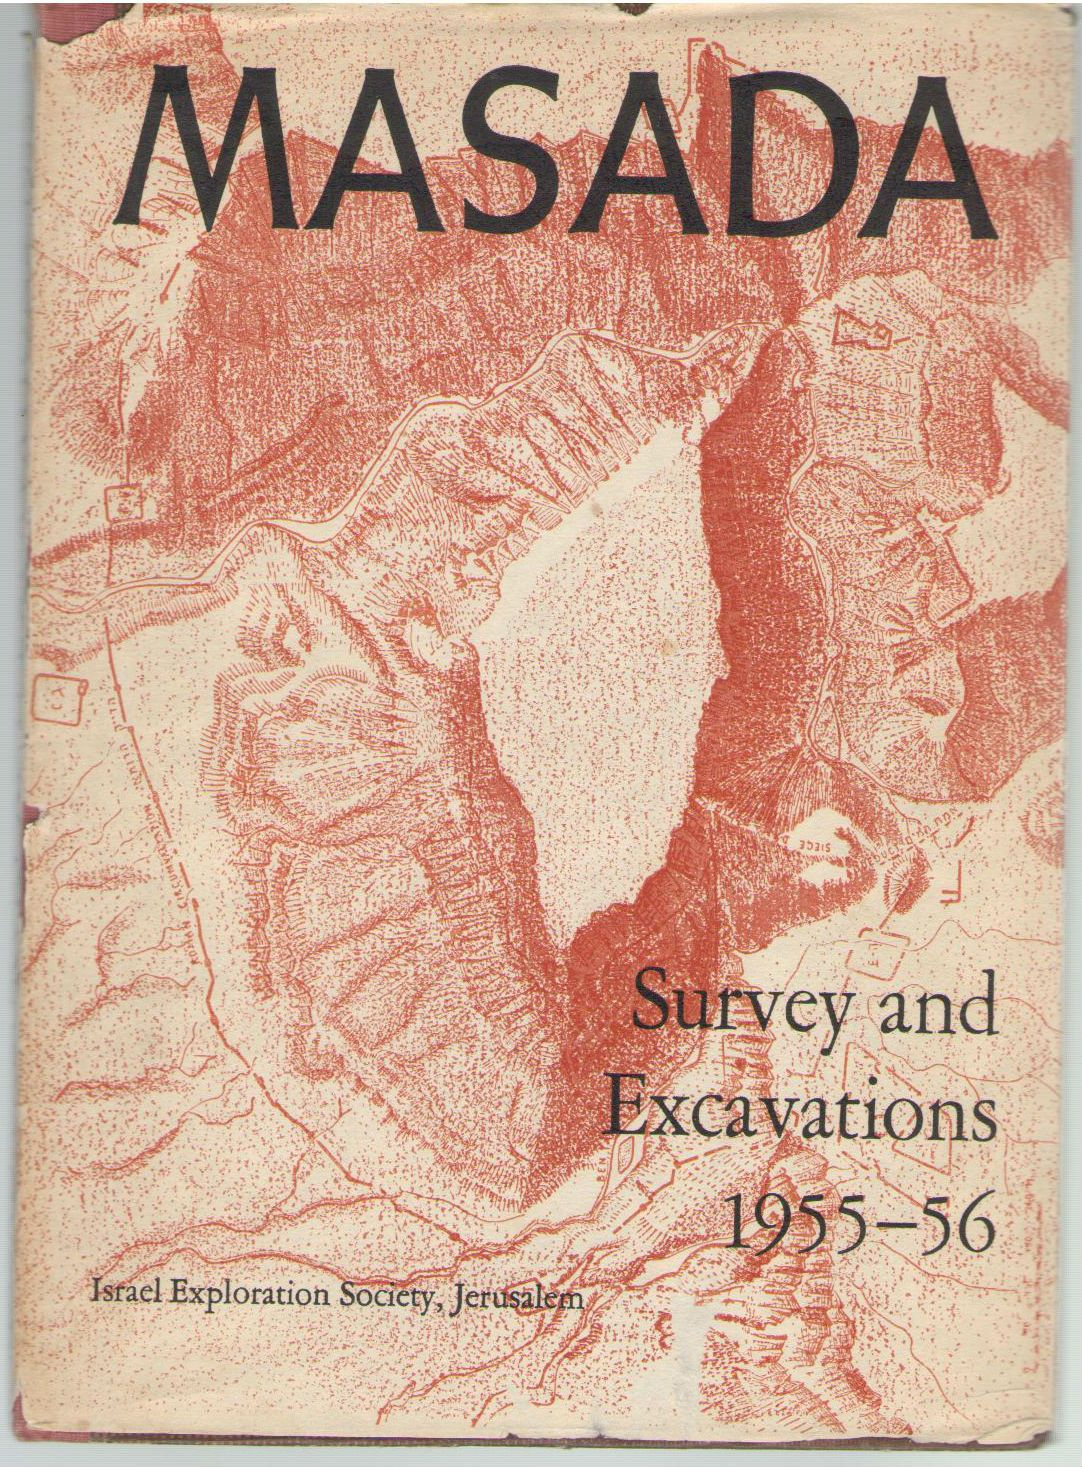 Masada Survey and Excavations 1955-1956 (Reprinted Fron the Israel Exploration Journal, Volume 7, Number 1, 1957)